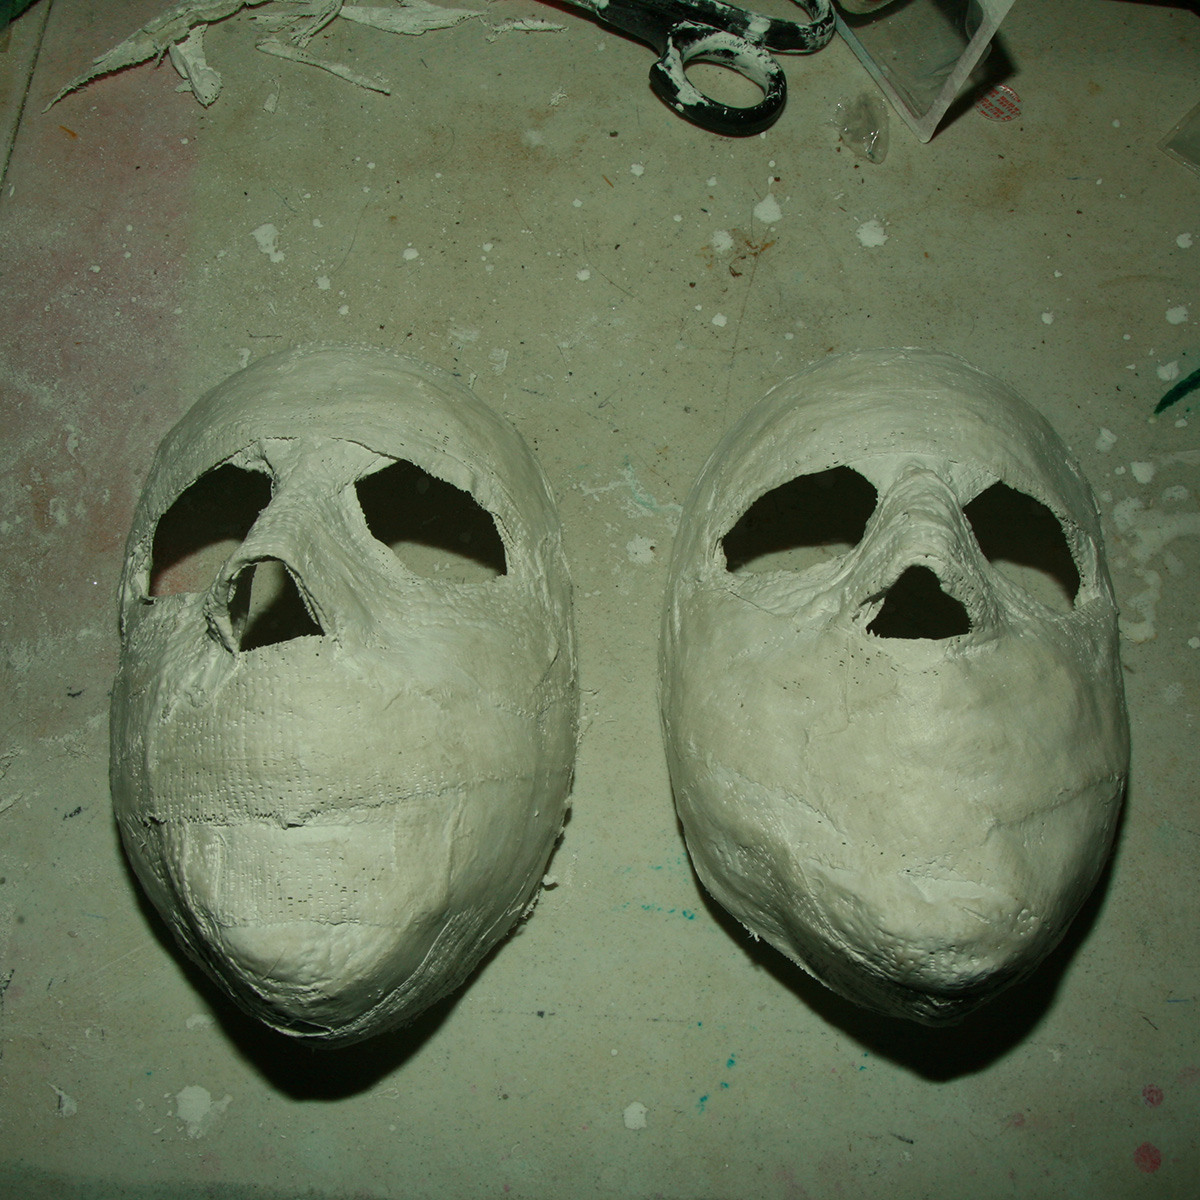 Two very basic plastic face masks on a table.